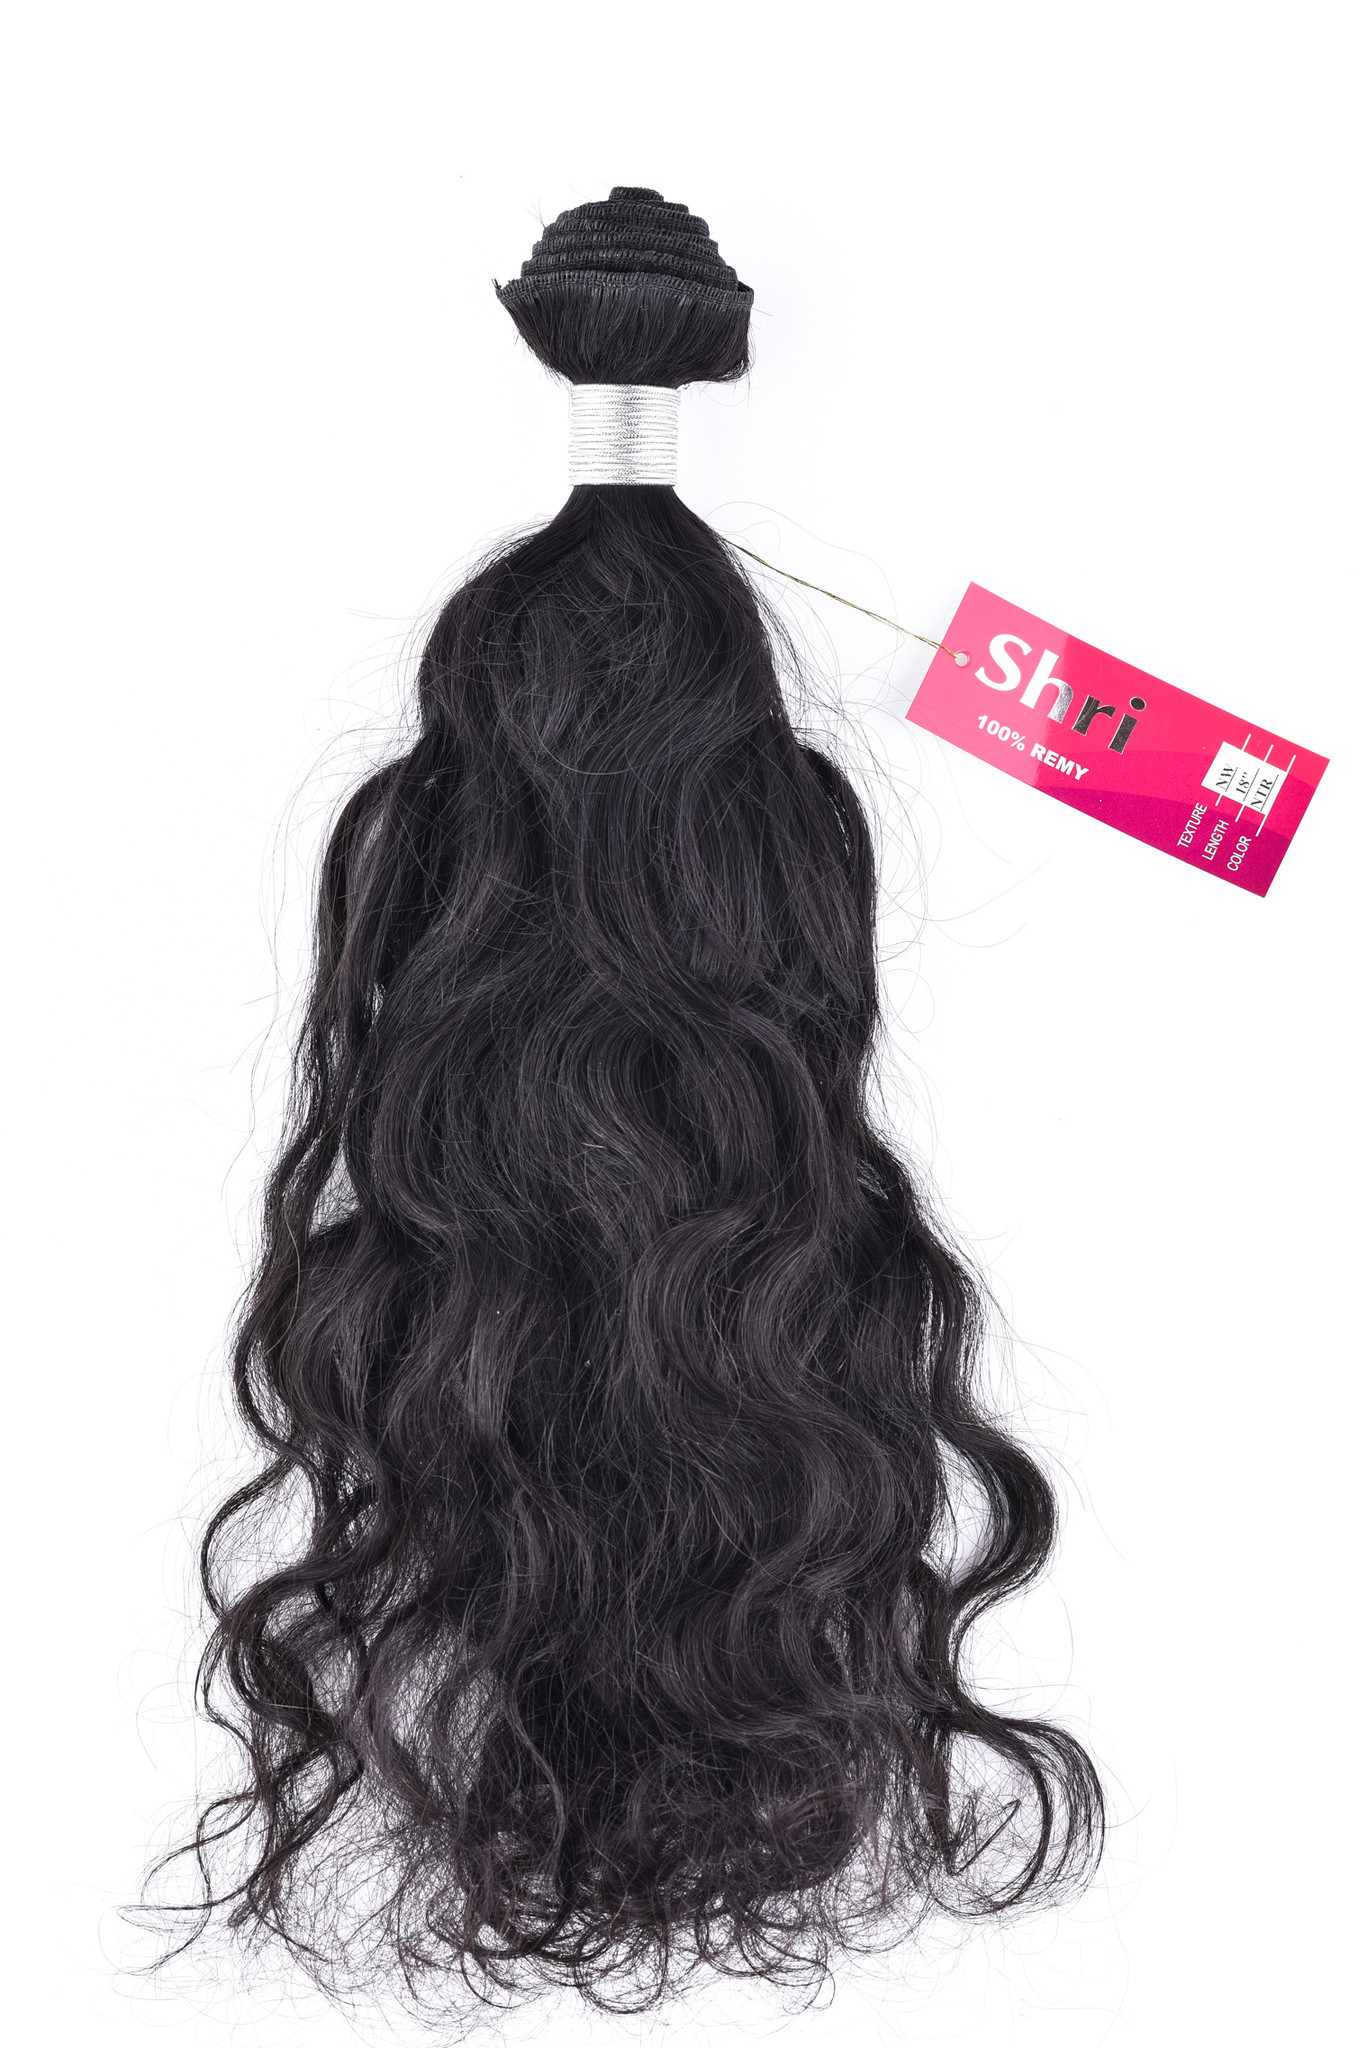 Shri SilverFox Indian Shri Weave - Loose Wave